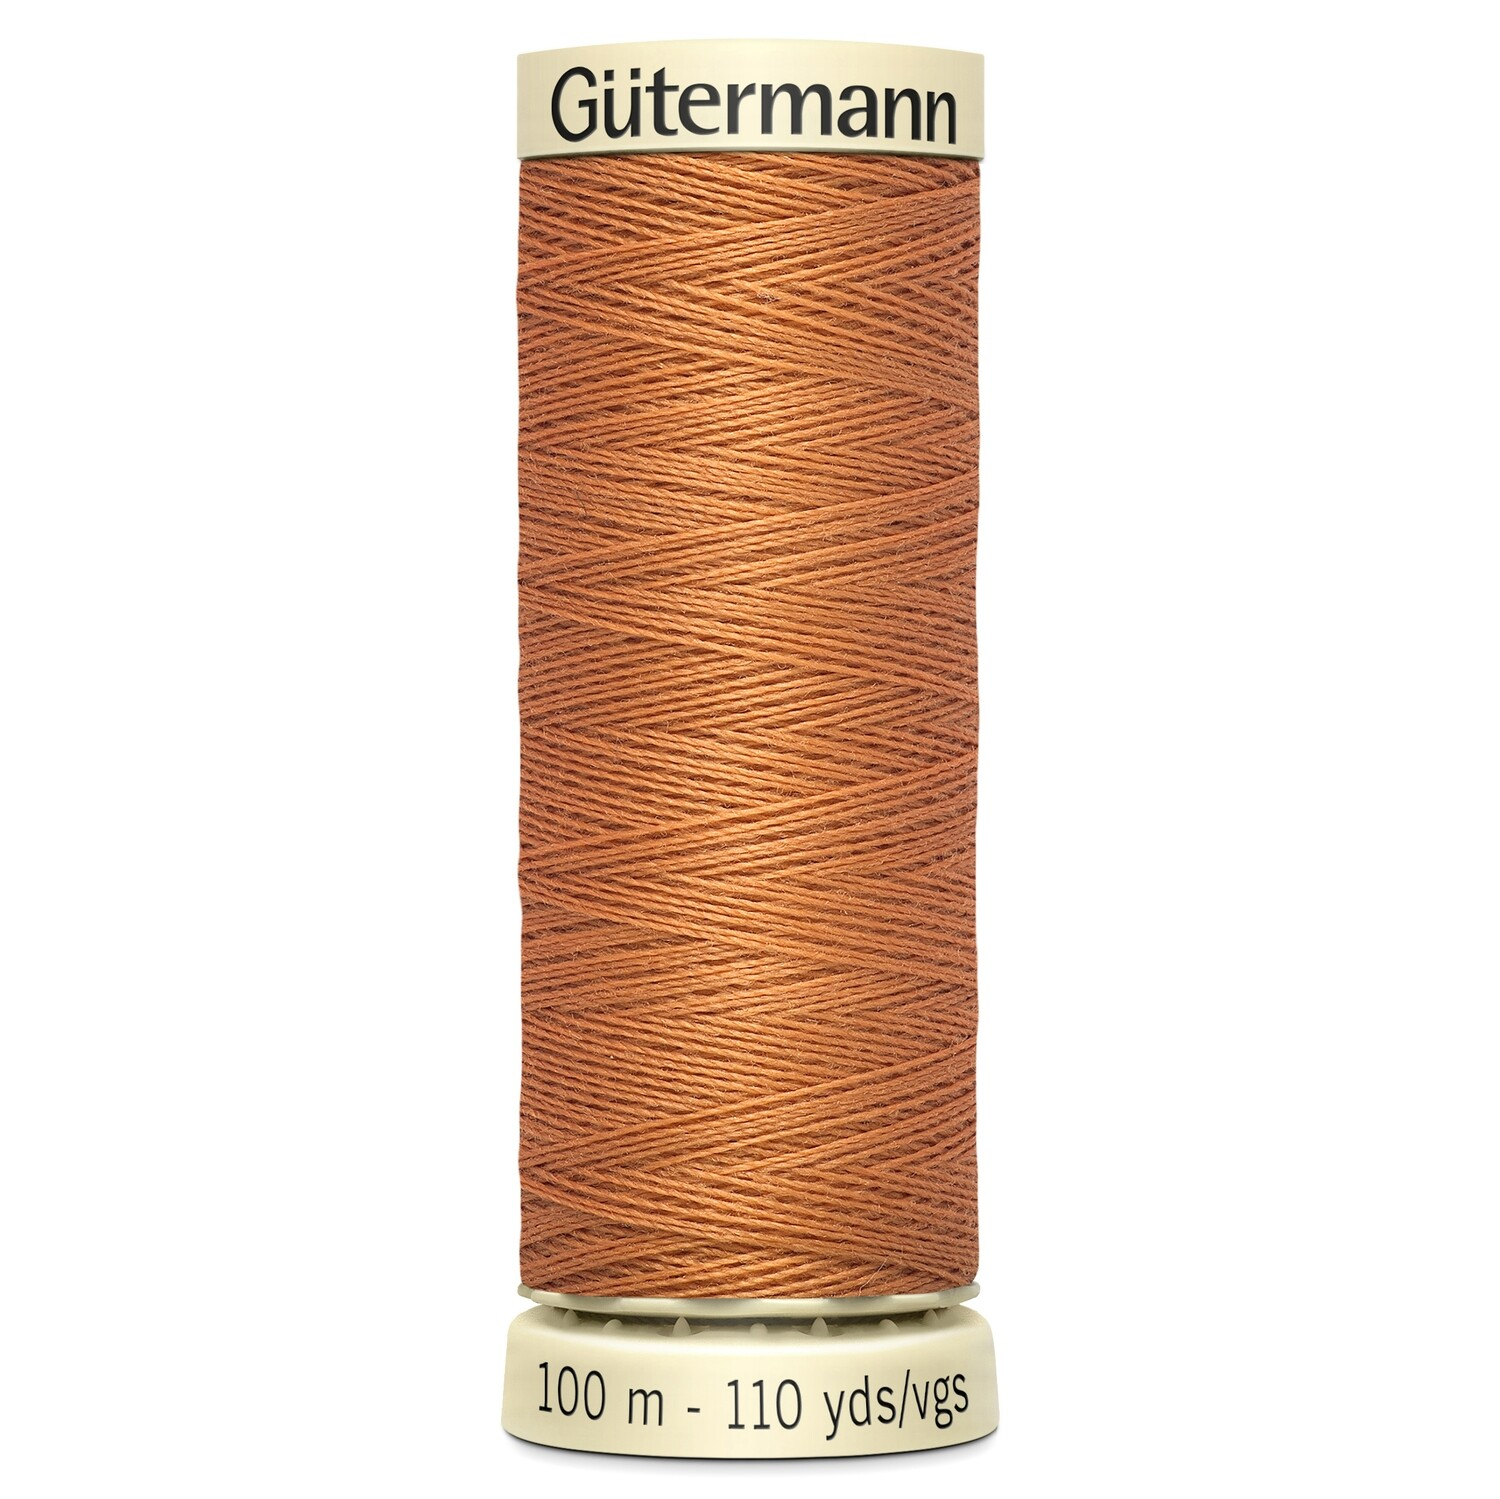 Gutermann Sew-All thread 612